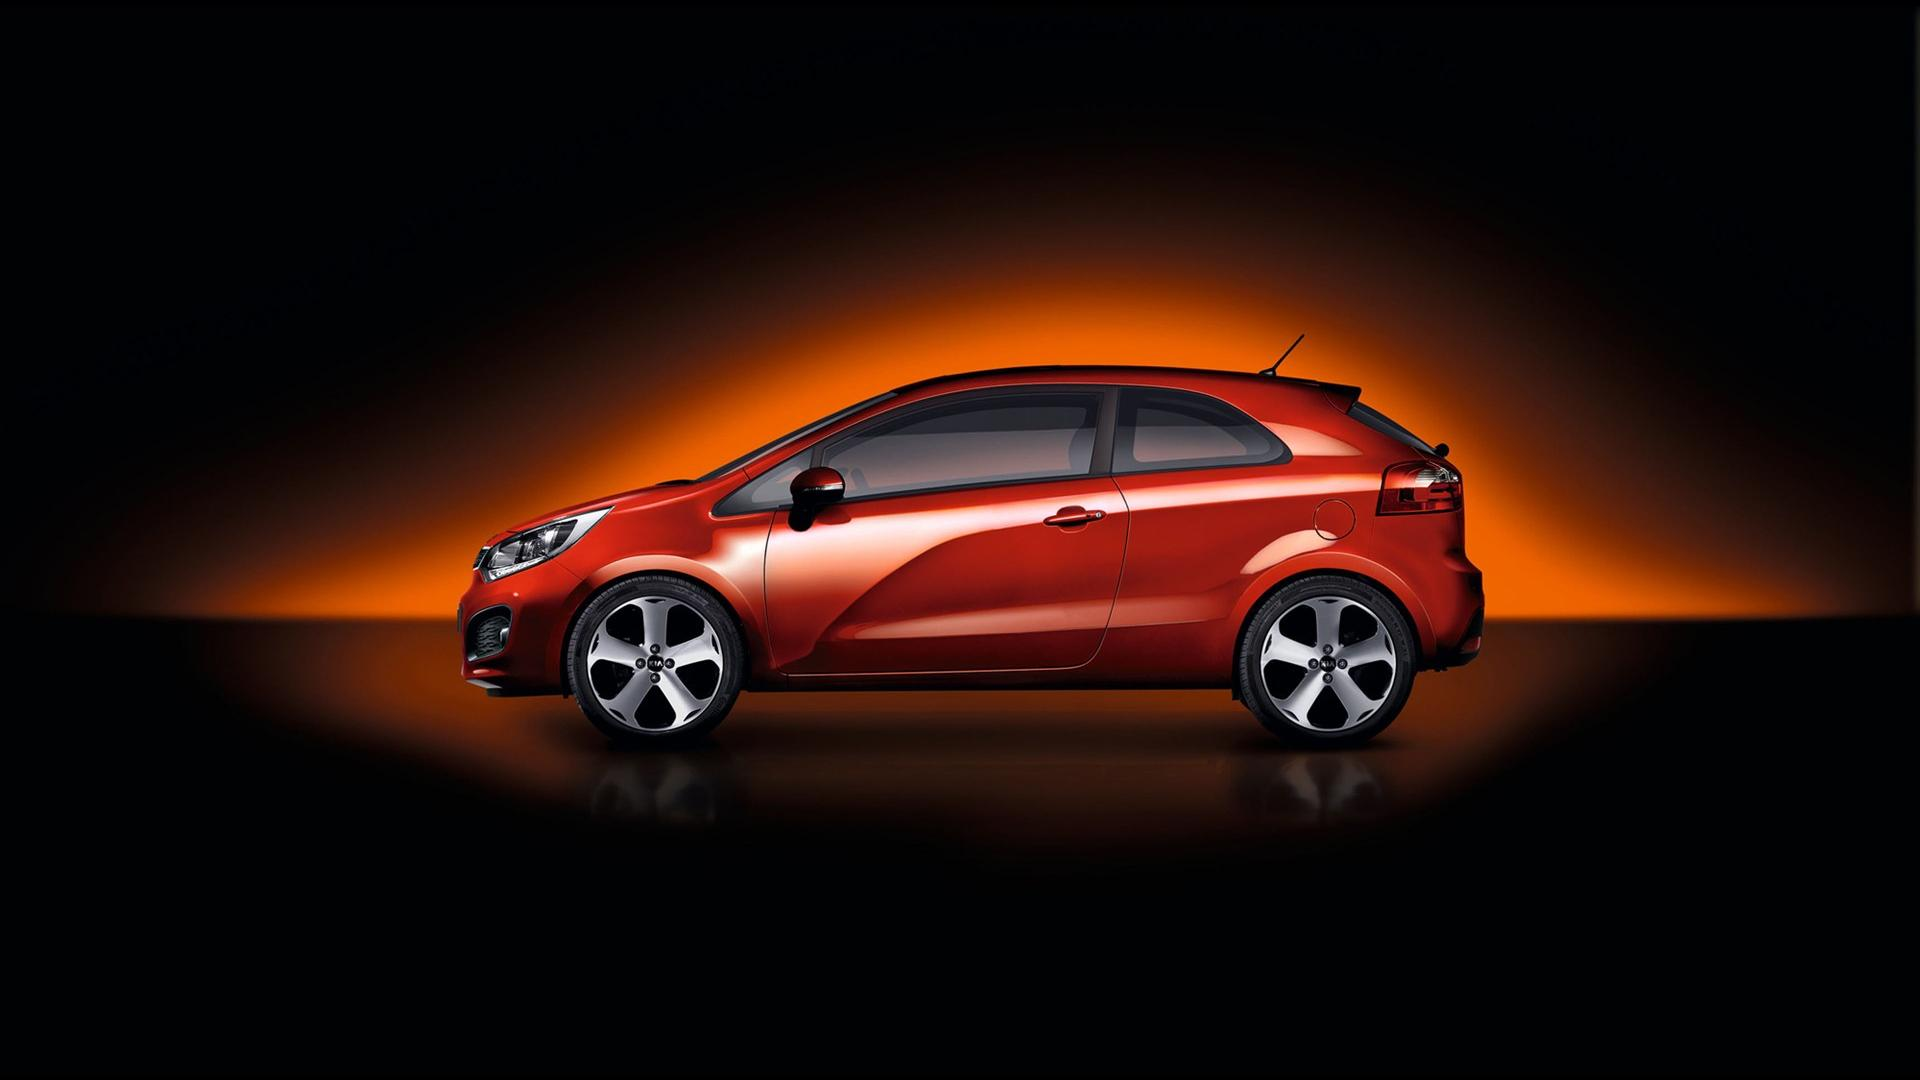 Top Rated HD Widescreen Kia Images   Awesome Collection 1920x1080